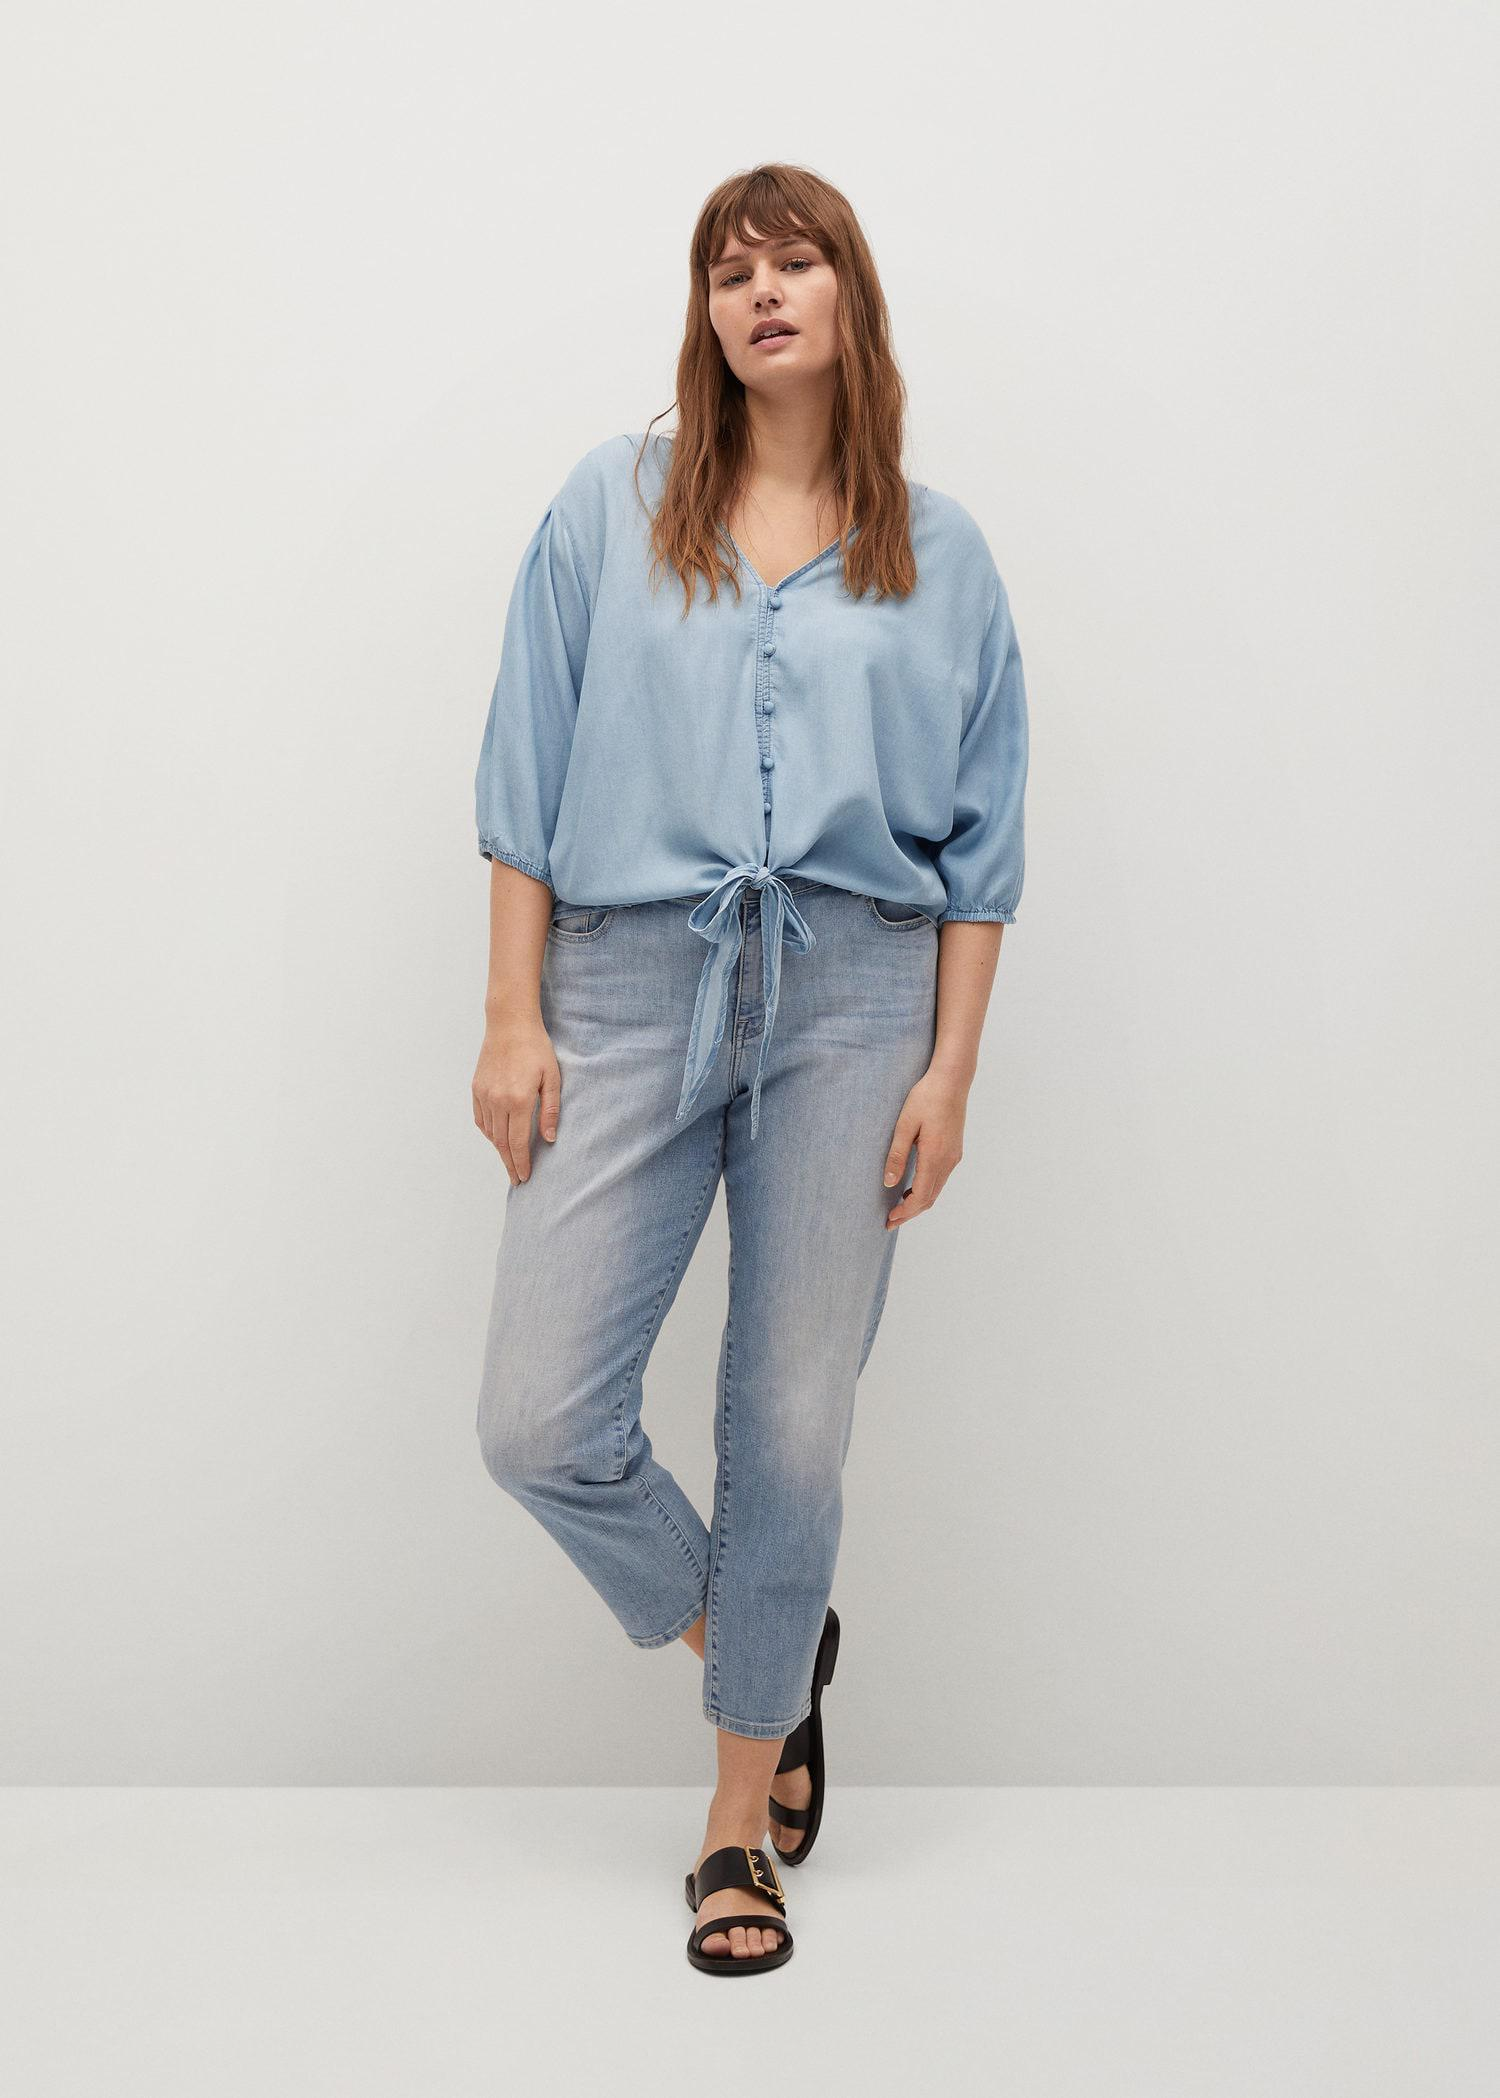 Knotted lyocell blouse